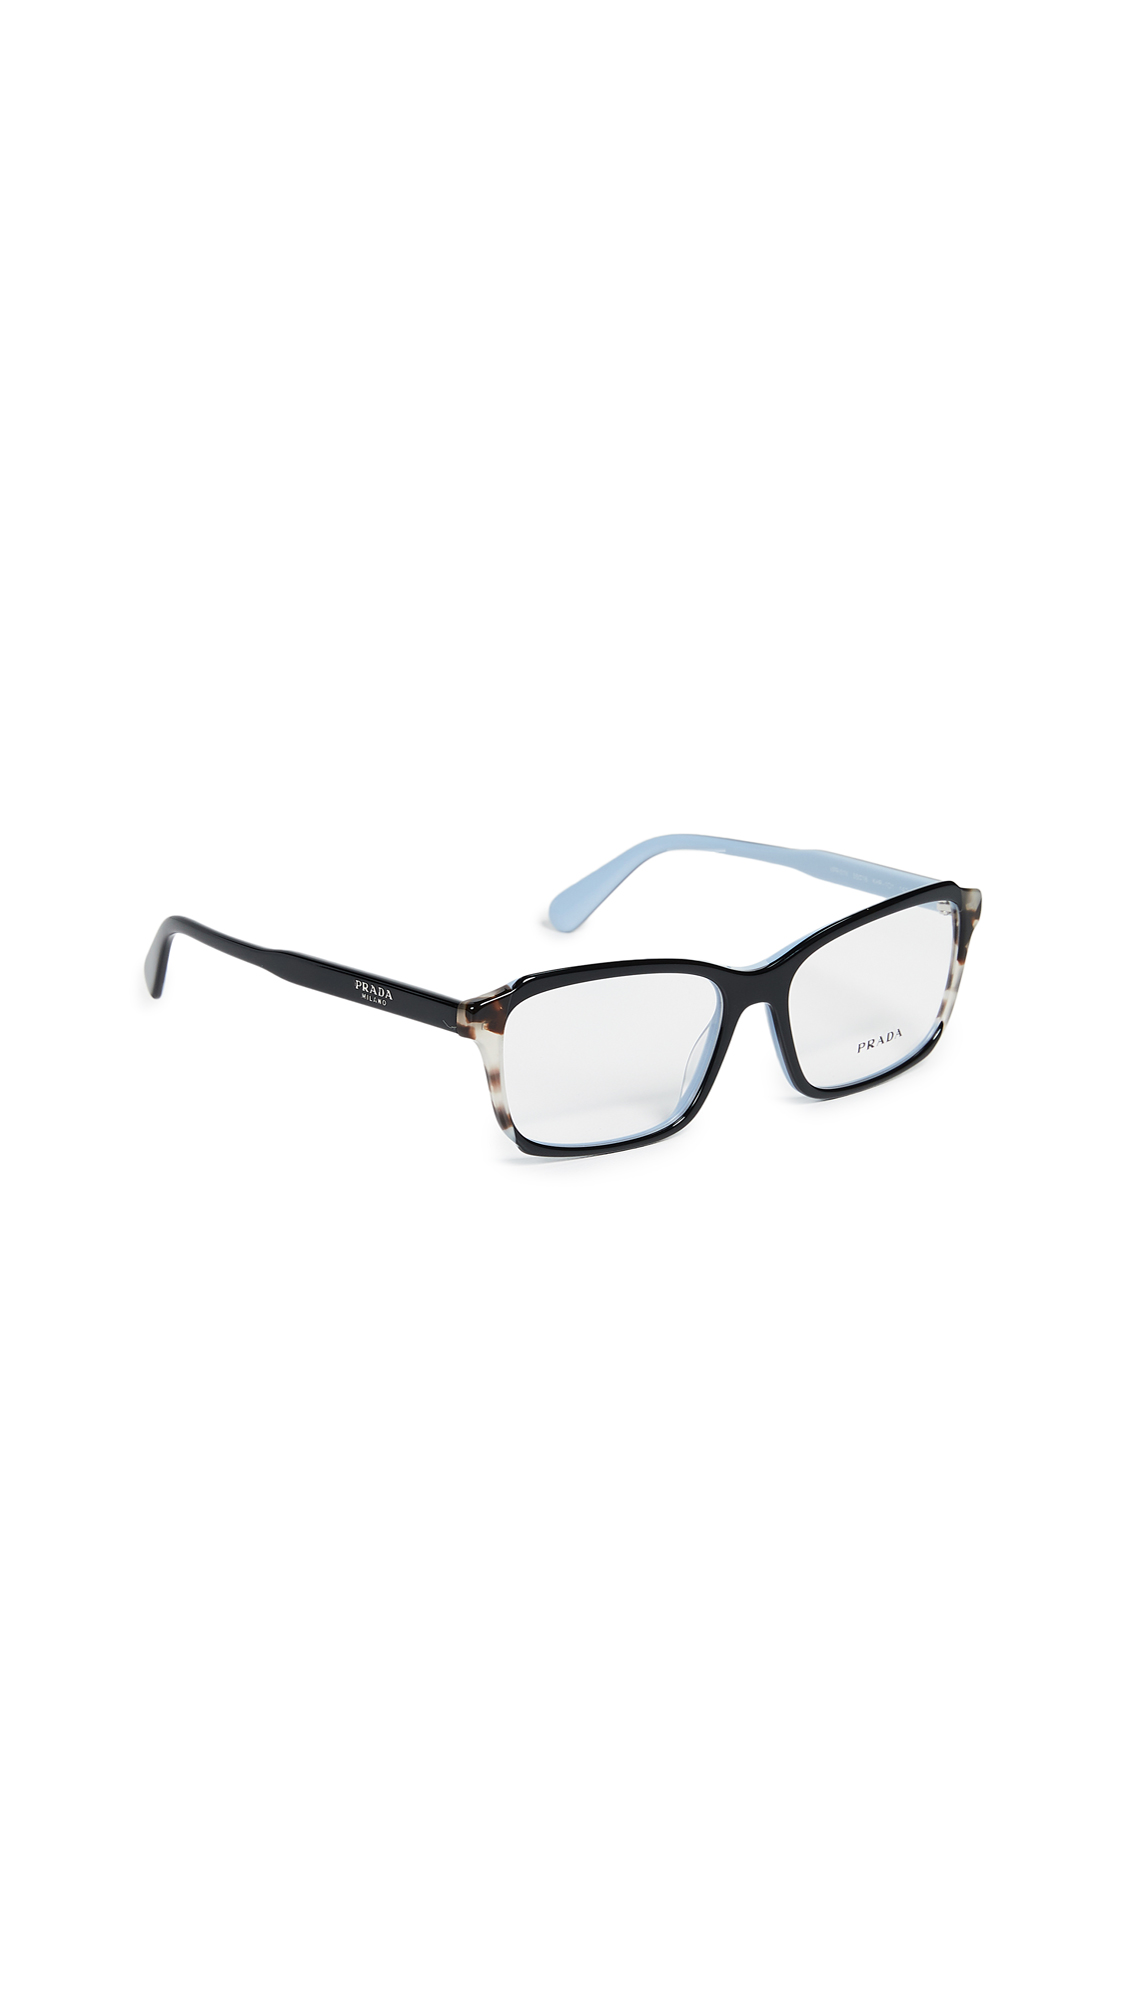 1cd4ac86f14 Prada Rectangle Glasses In Black Brown Clear